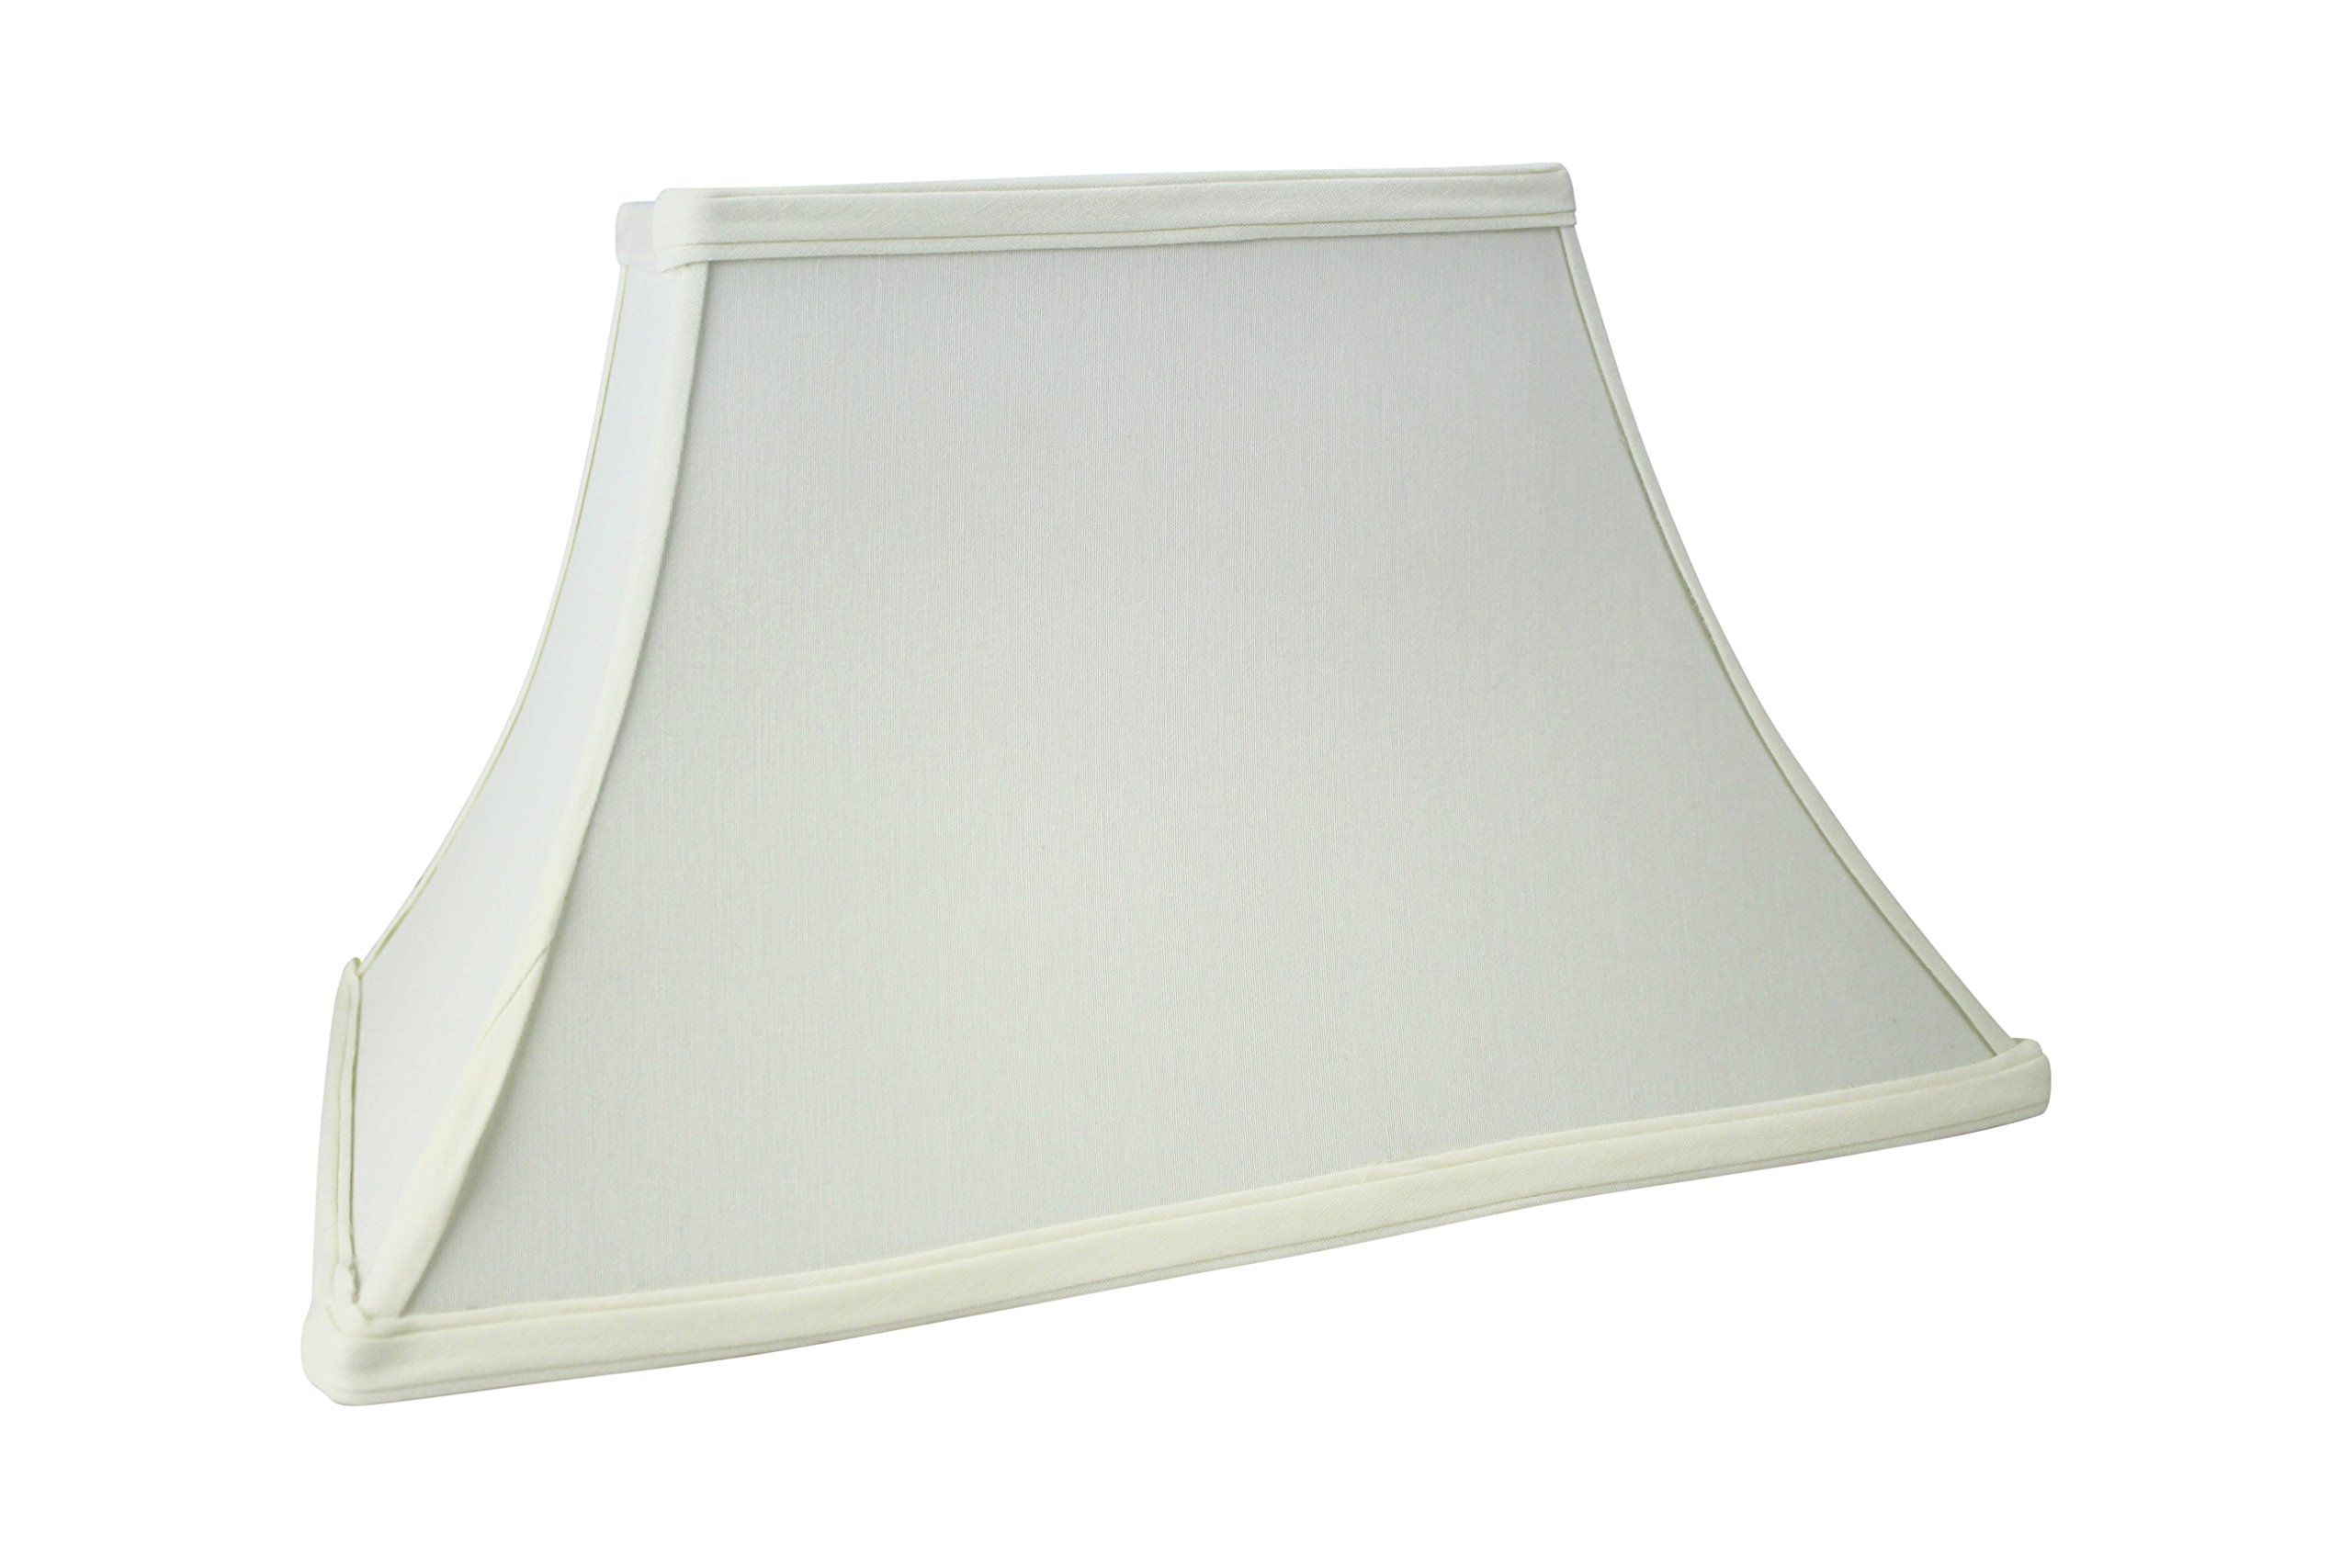 Rectangular Hard Back Bell Lamp Shade Off White Eggshell Color 16 Inch By Upgradelamps Click Image To Review More Details This Is Lamp Lamp Shade Shades